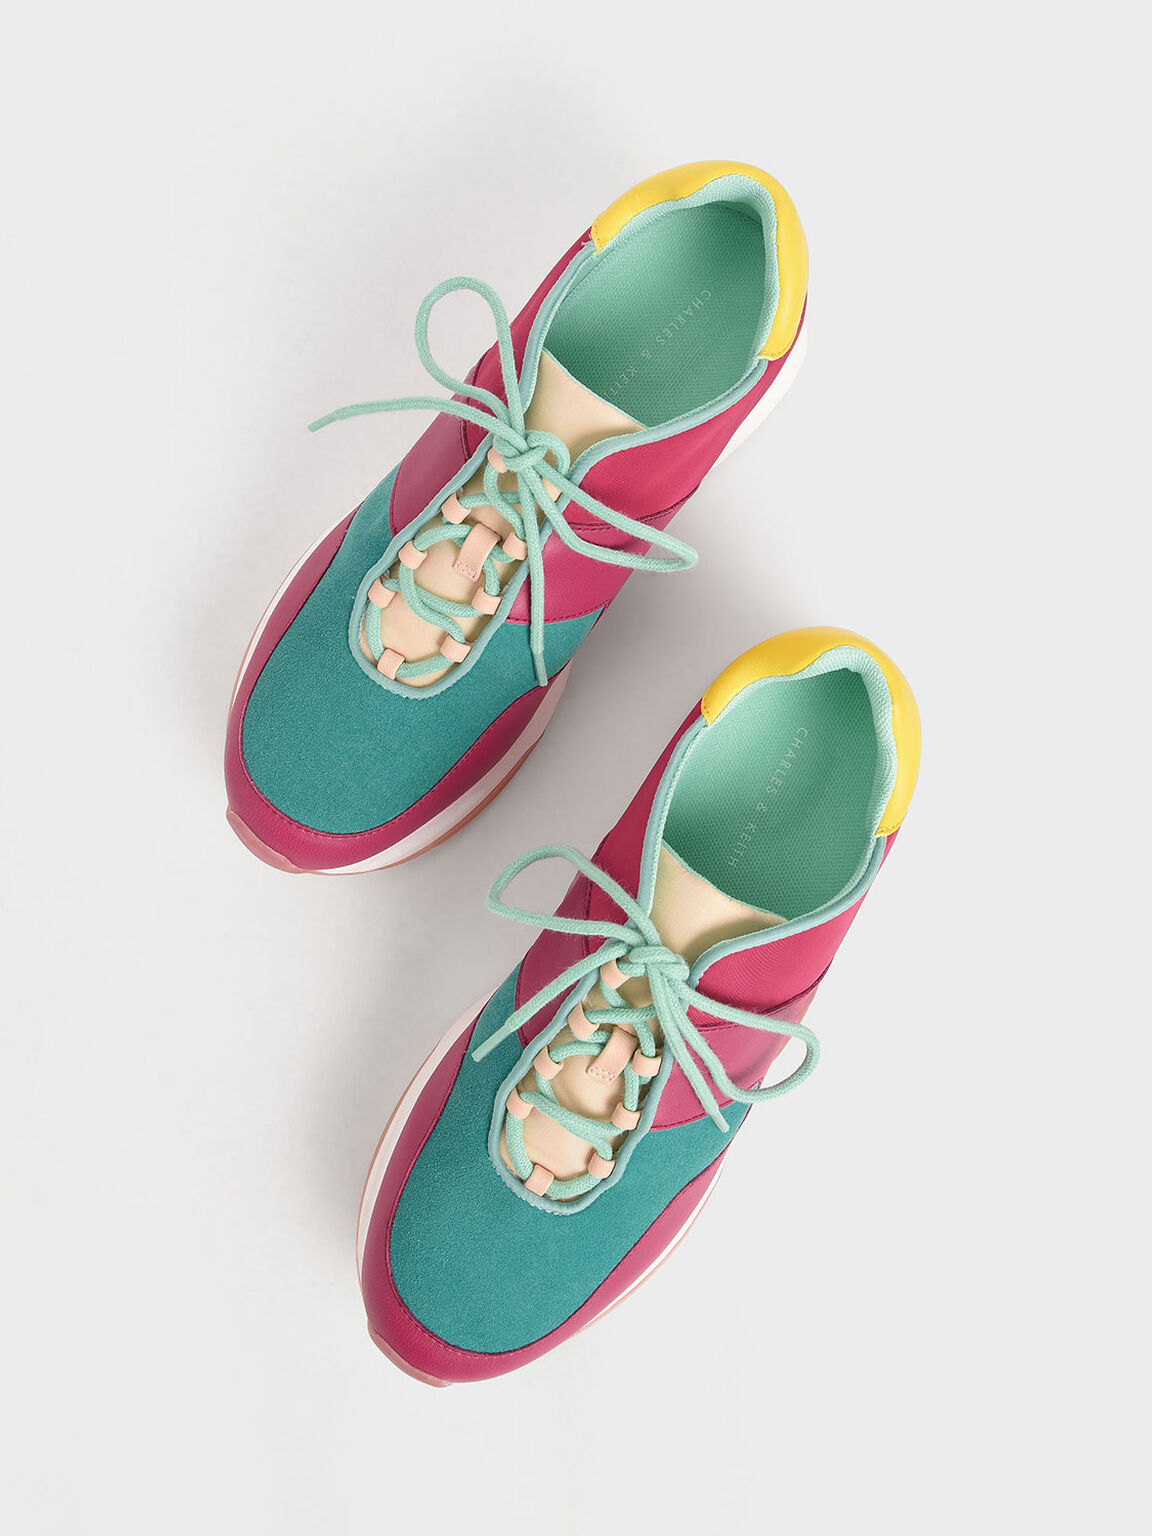 Textured Lace-Up Sneakers, Teal, hi-res